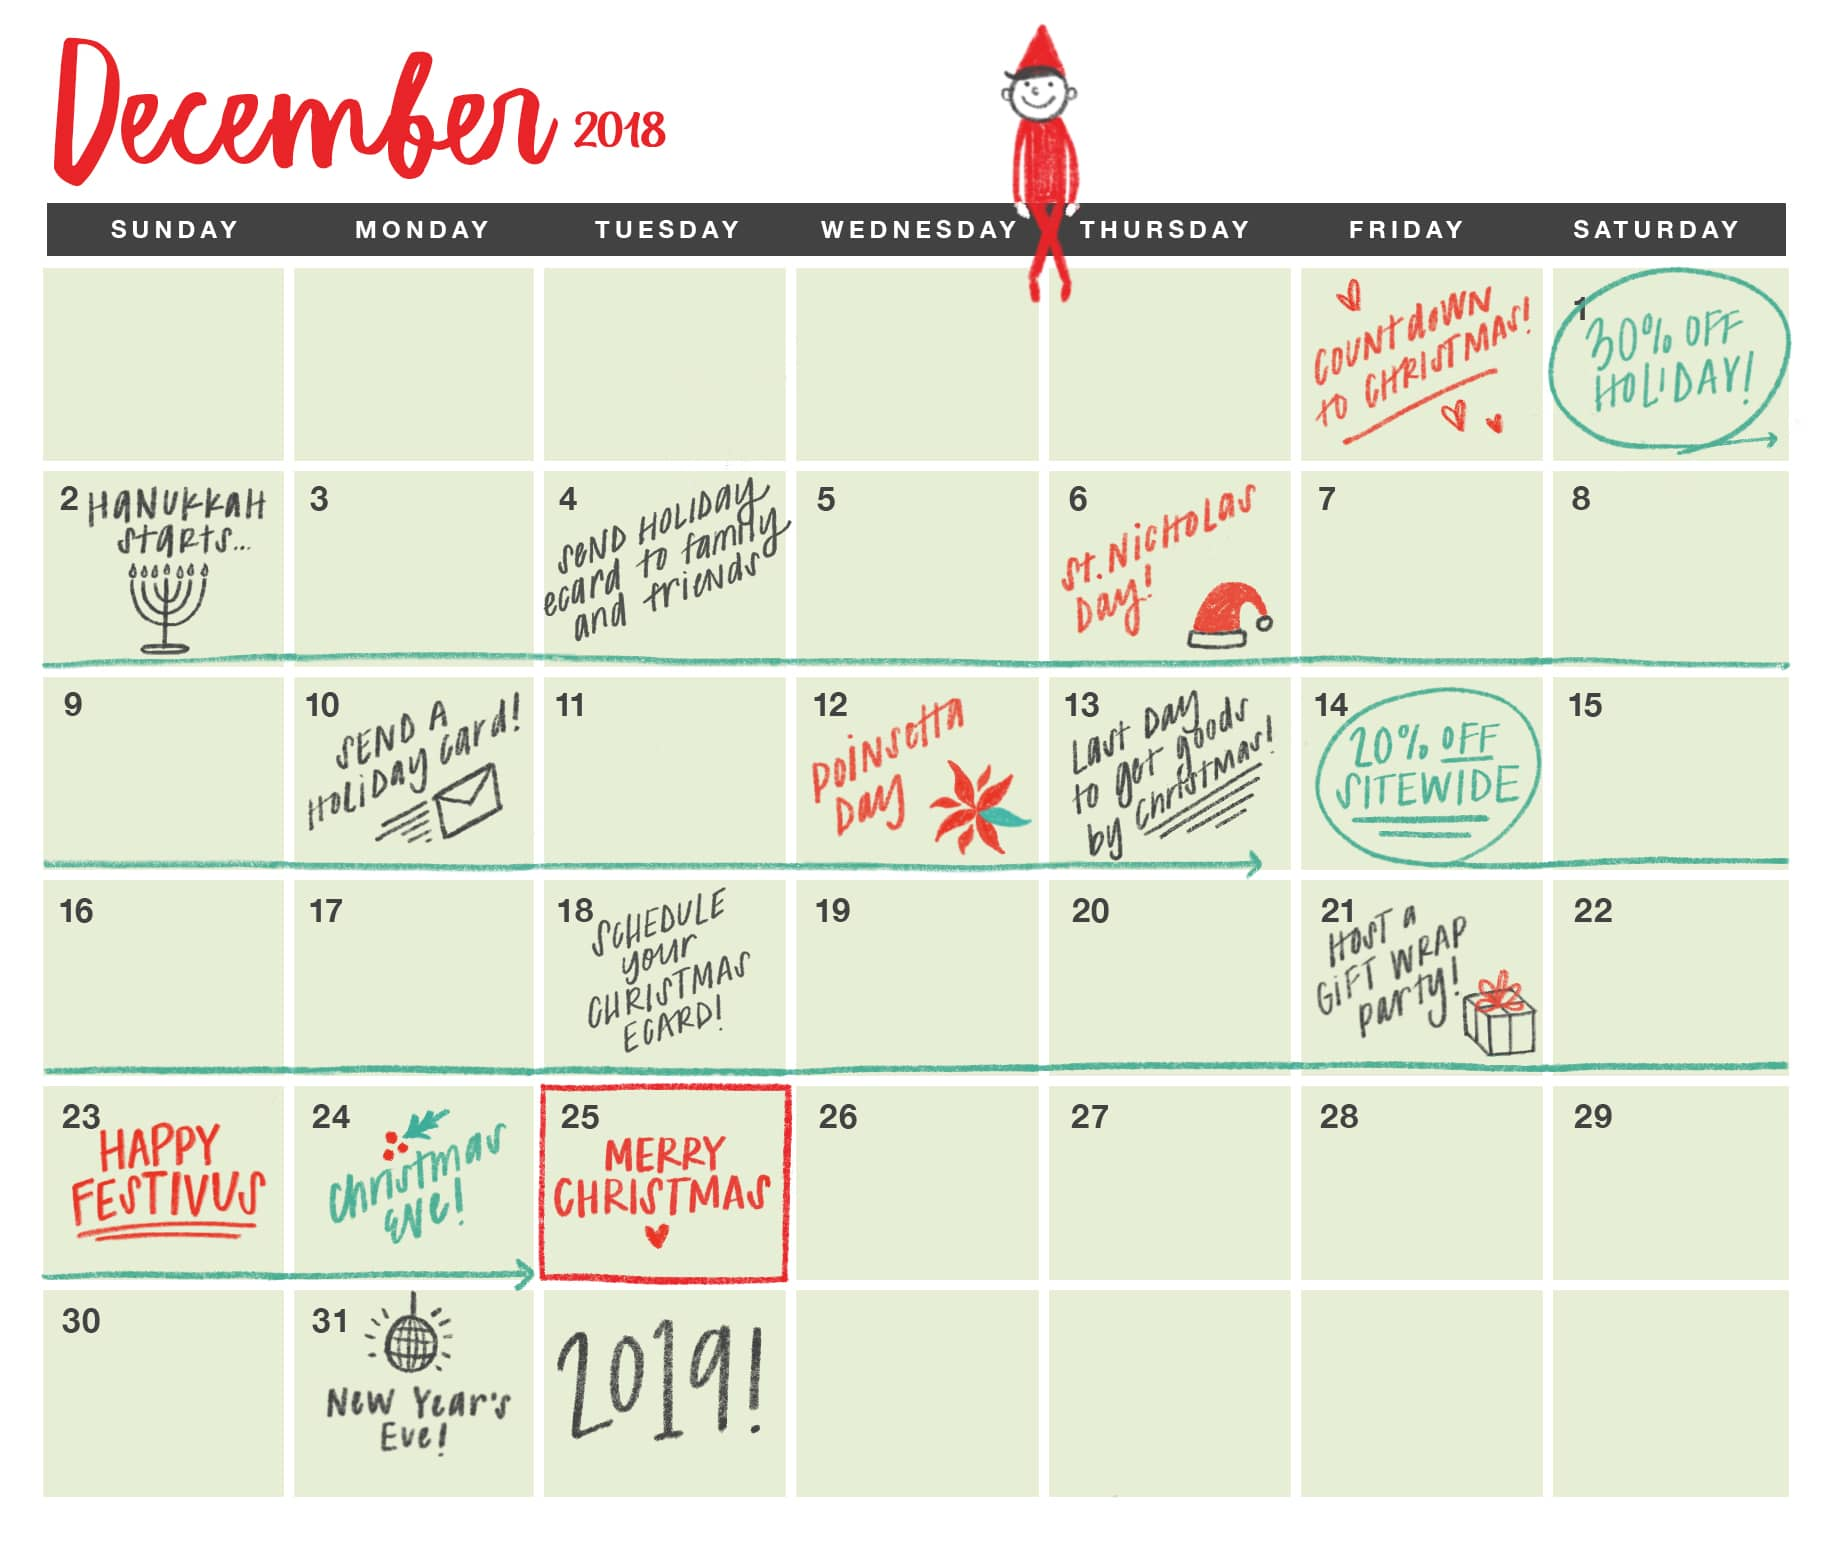 December Holiday Calendar